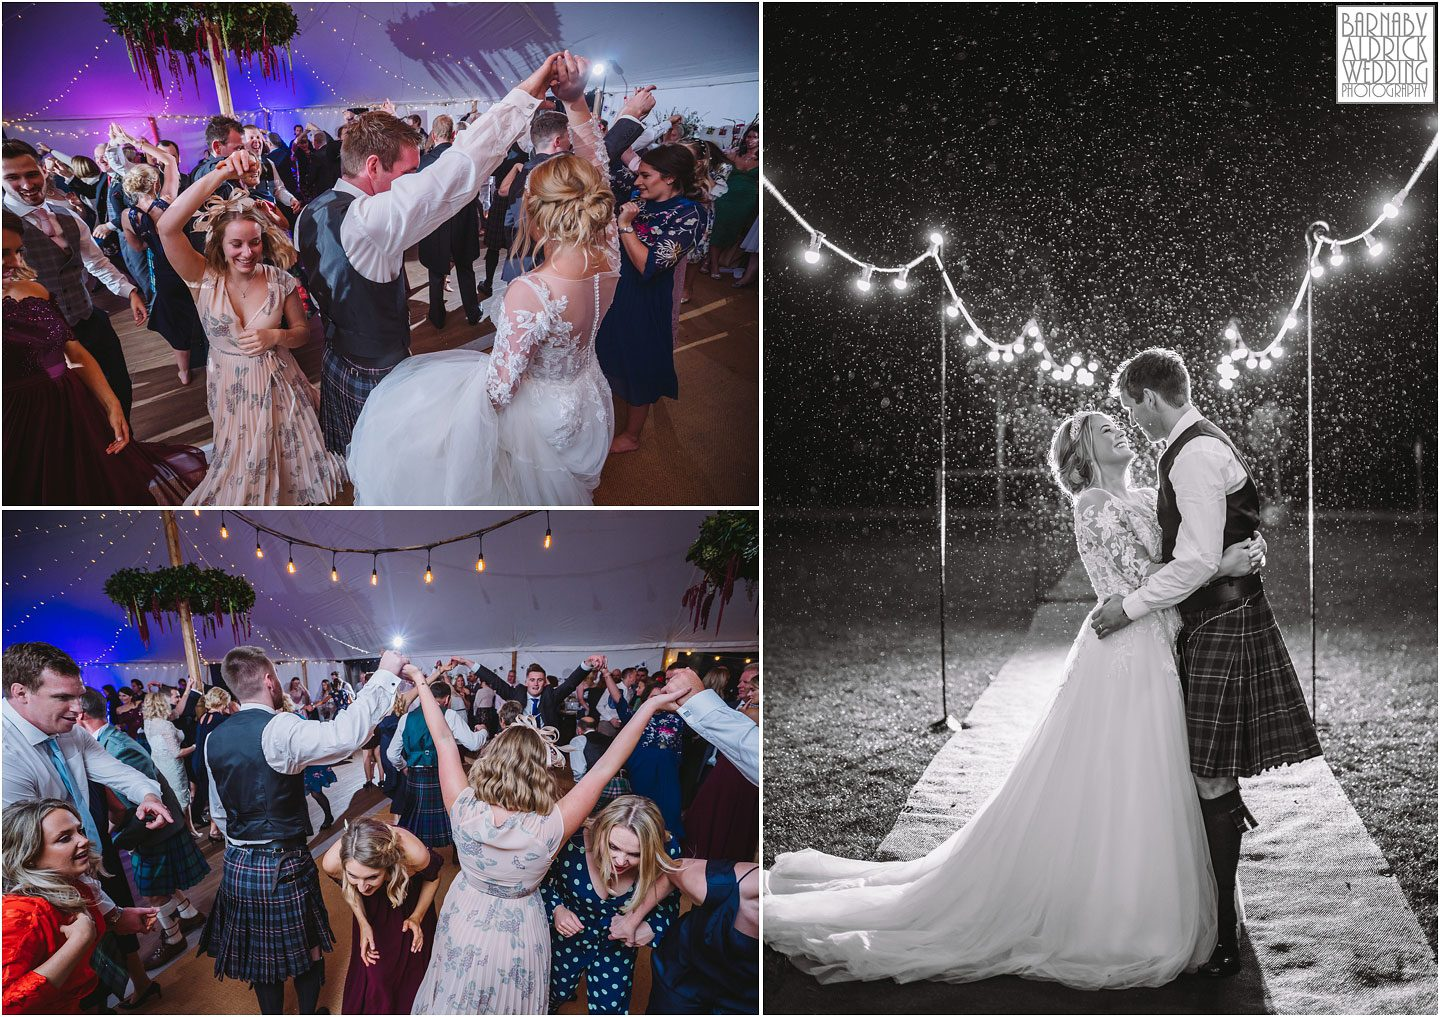 Yorkshire cèilidh scottish wedding dancing